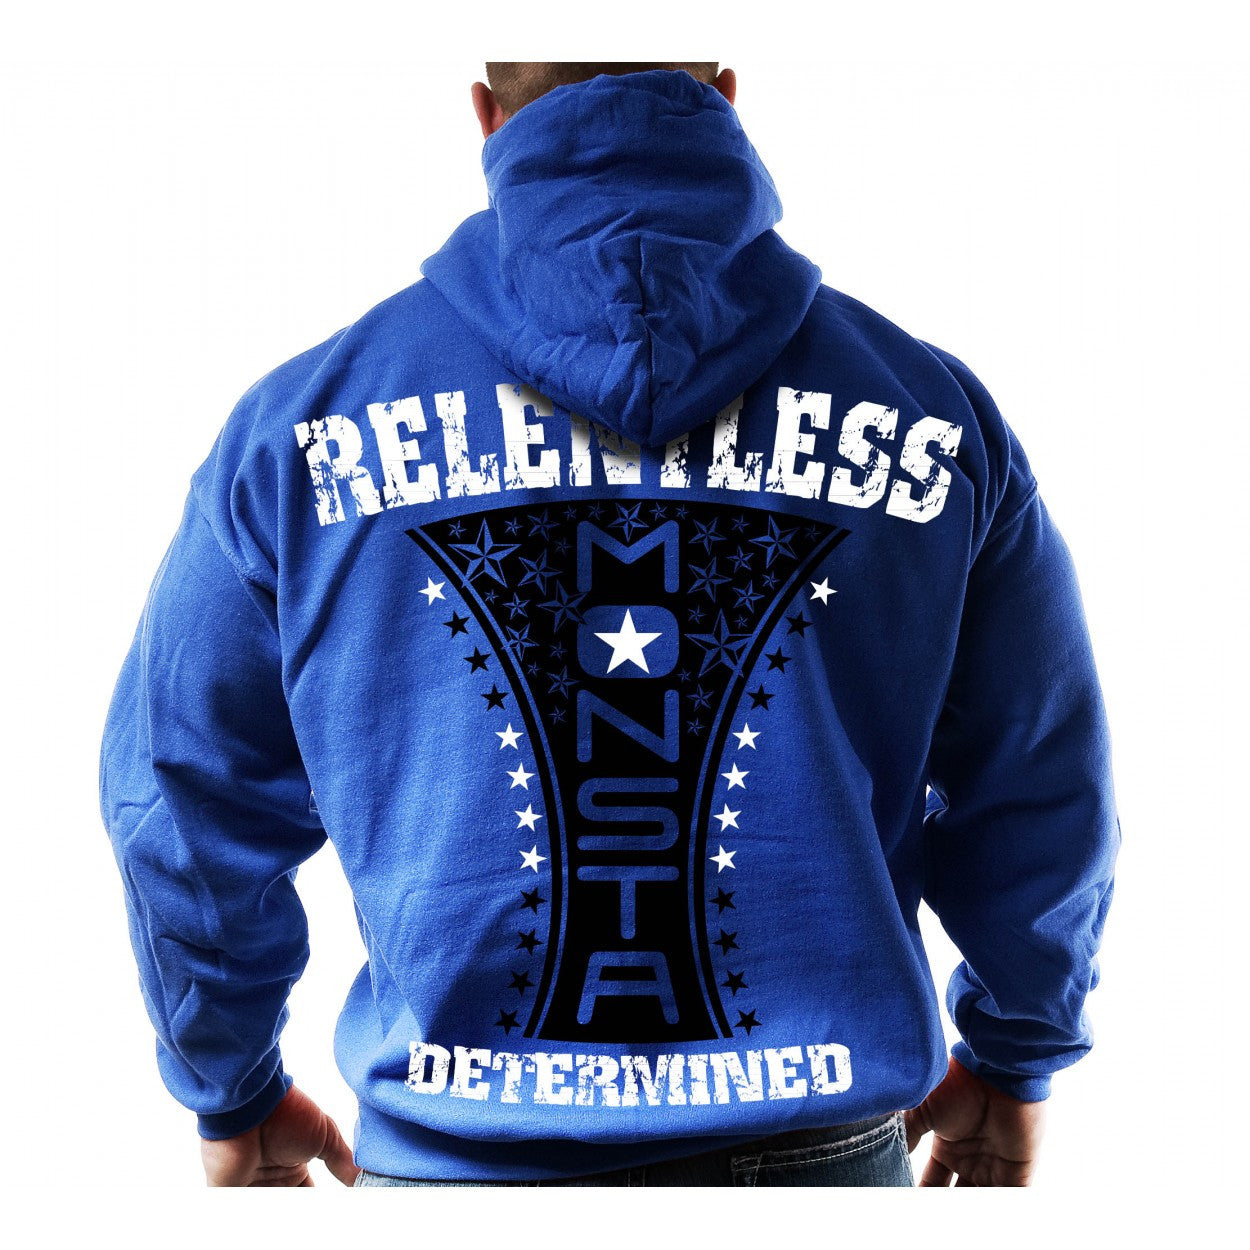 HOODIE: RELENTLESS (DETERMINED)-138 - Monsta Clothing Australia